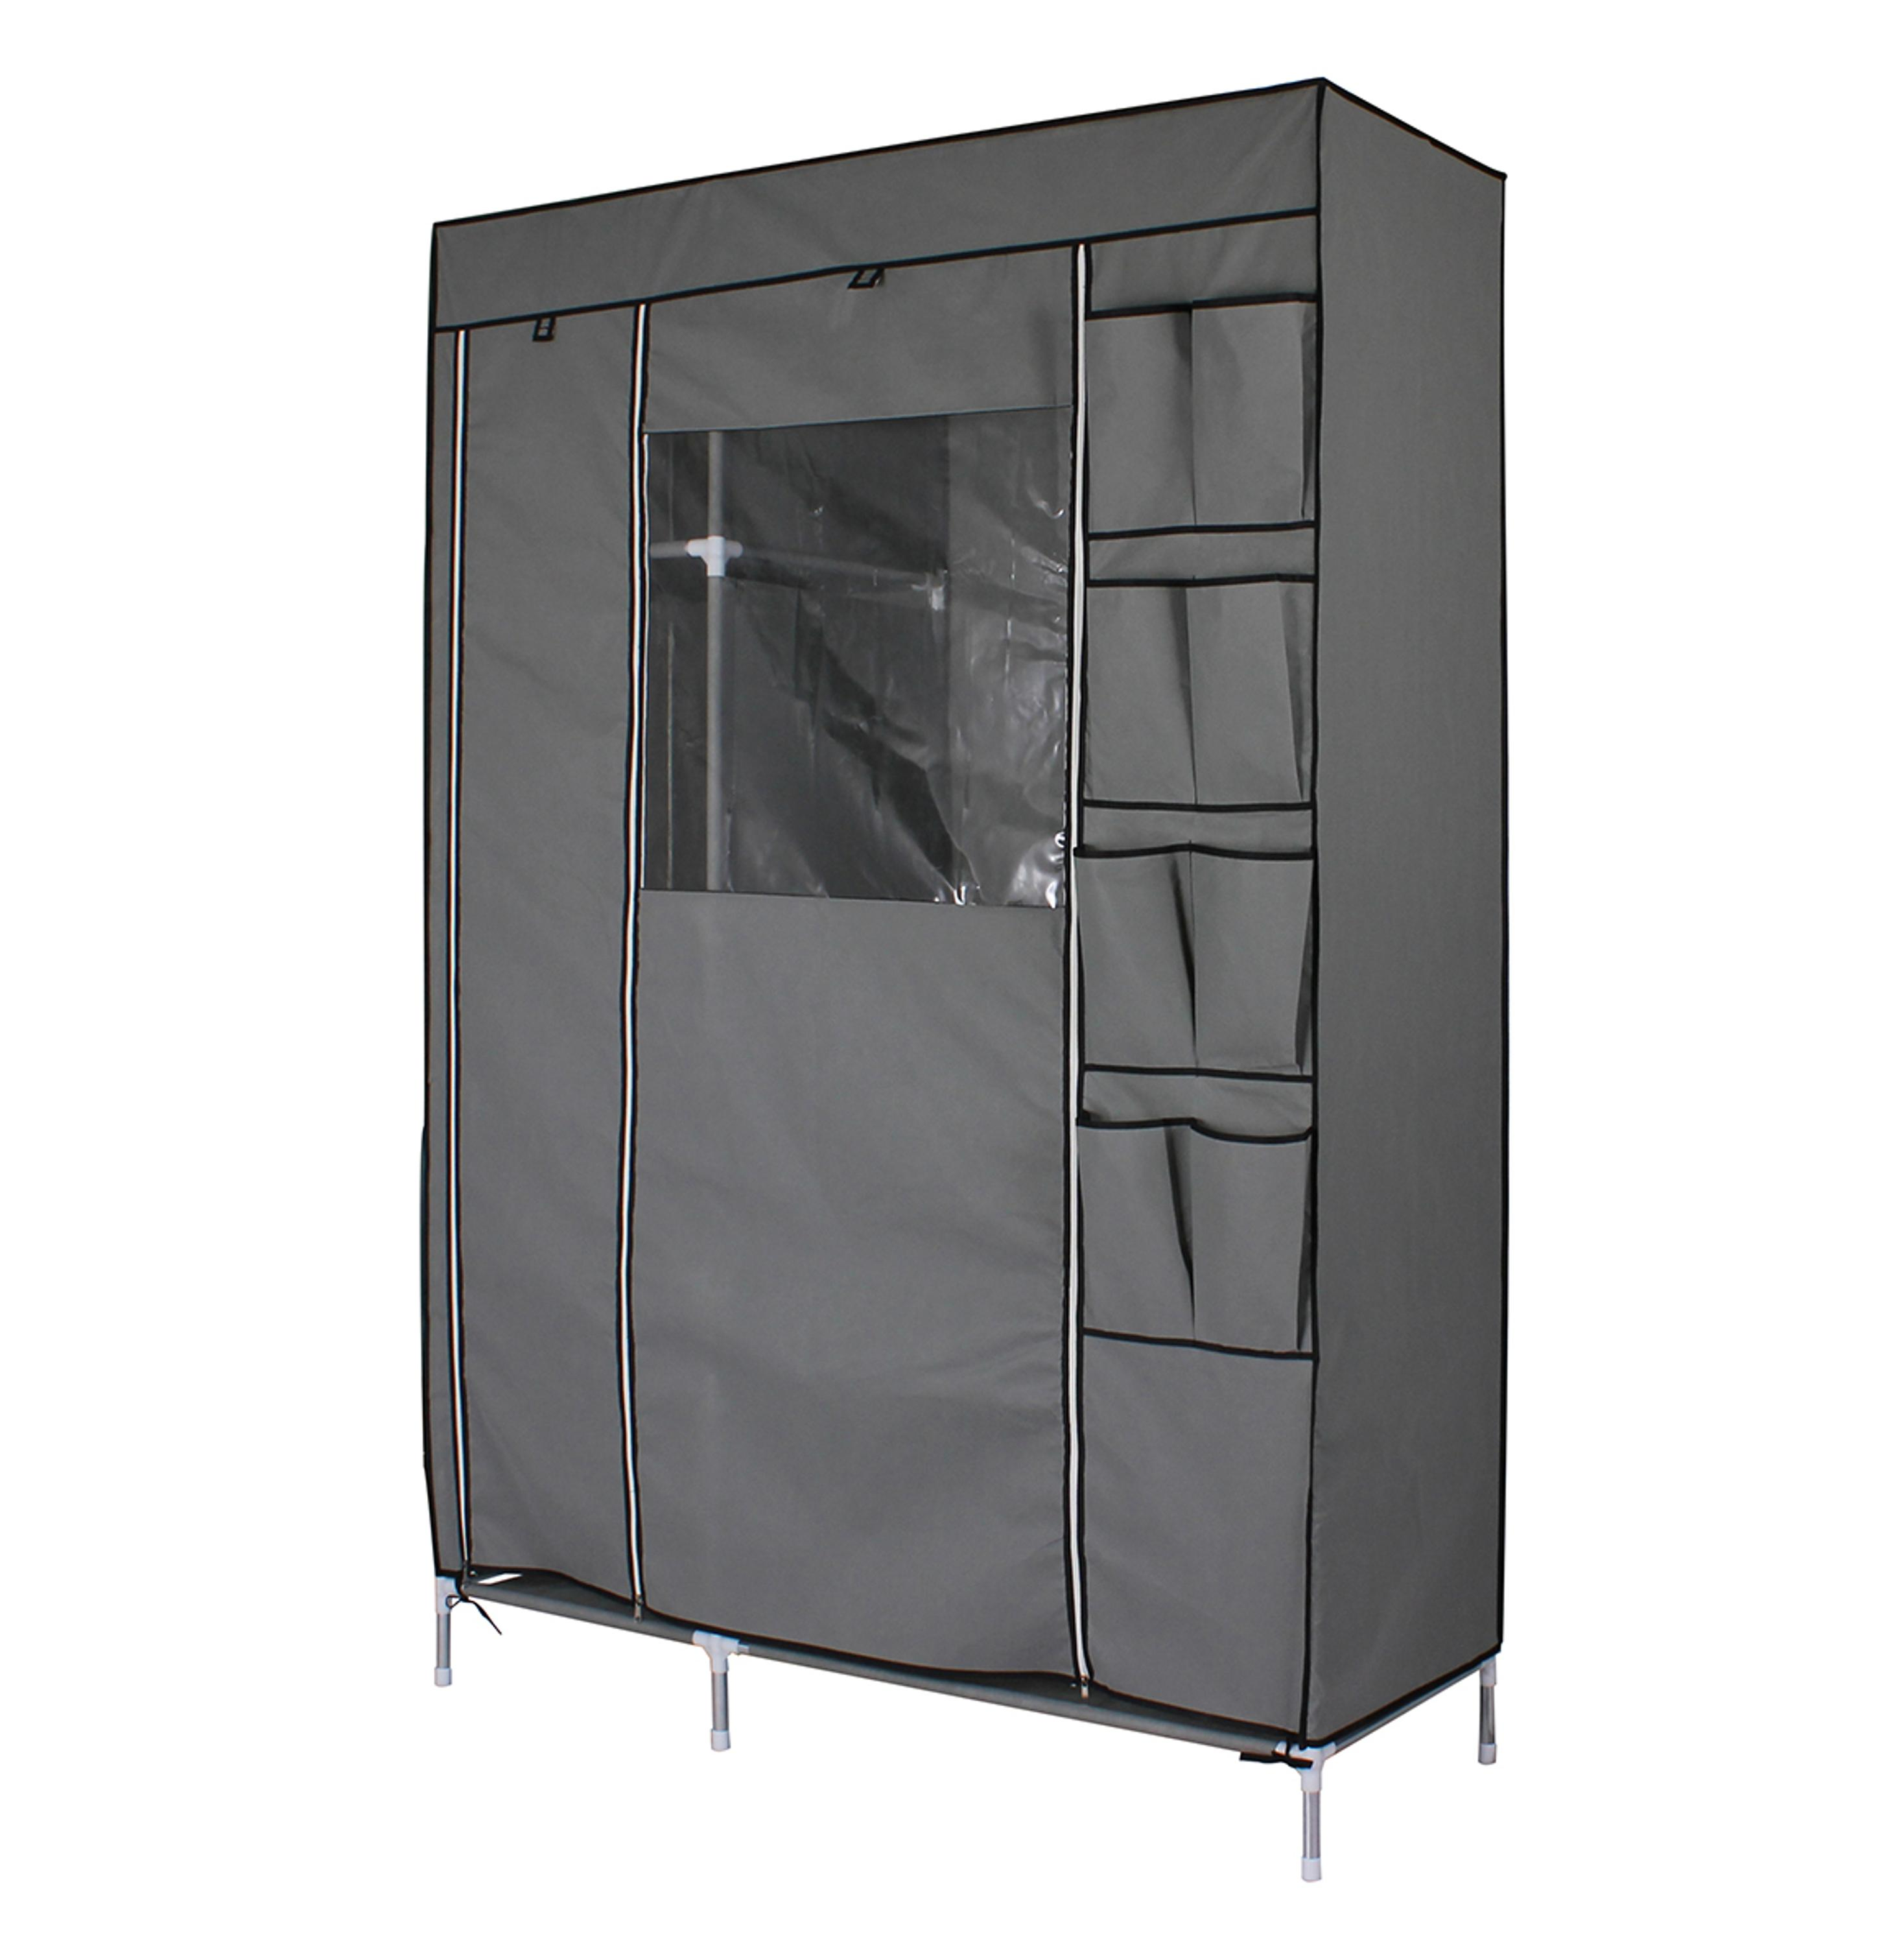 cupboard for cabinets sale bedroom s cupboards wardrobe design brisbane armoire lowes plastic philippines canada storage used cabinet